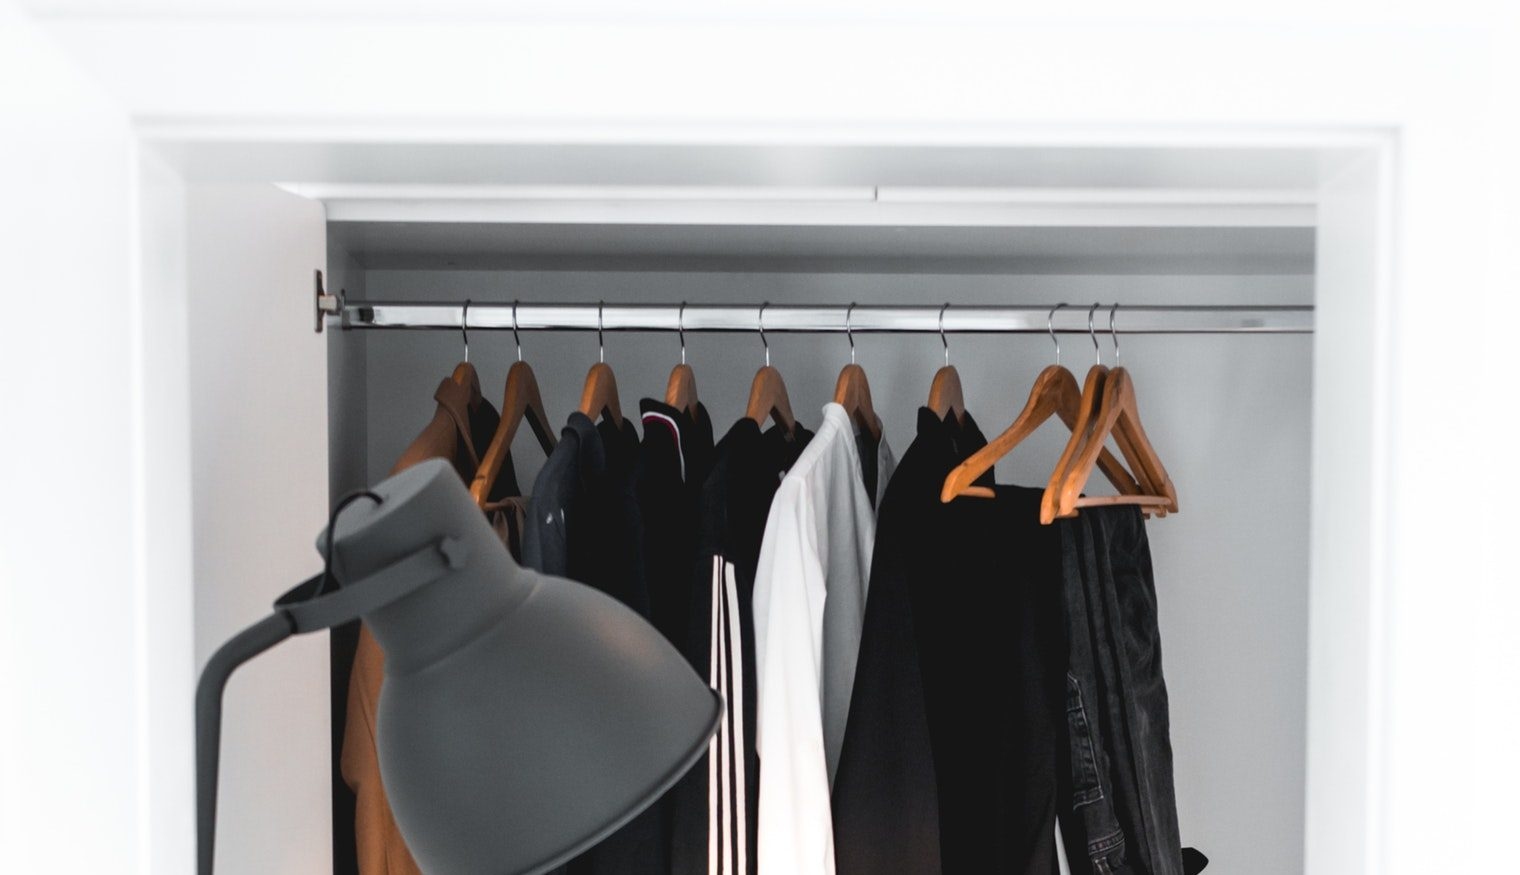 5 Bedroom Closet Storage Ideas That Will Save You Major Space